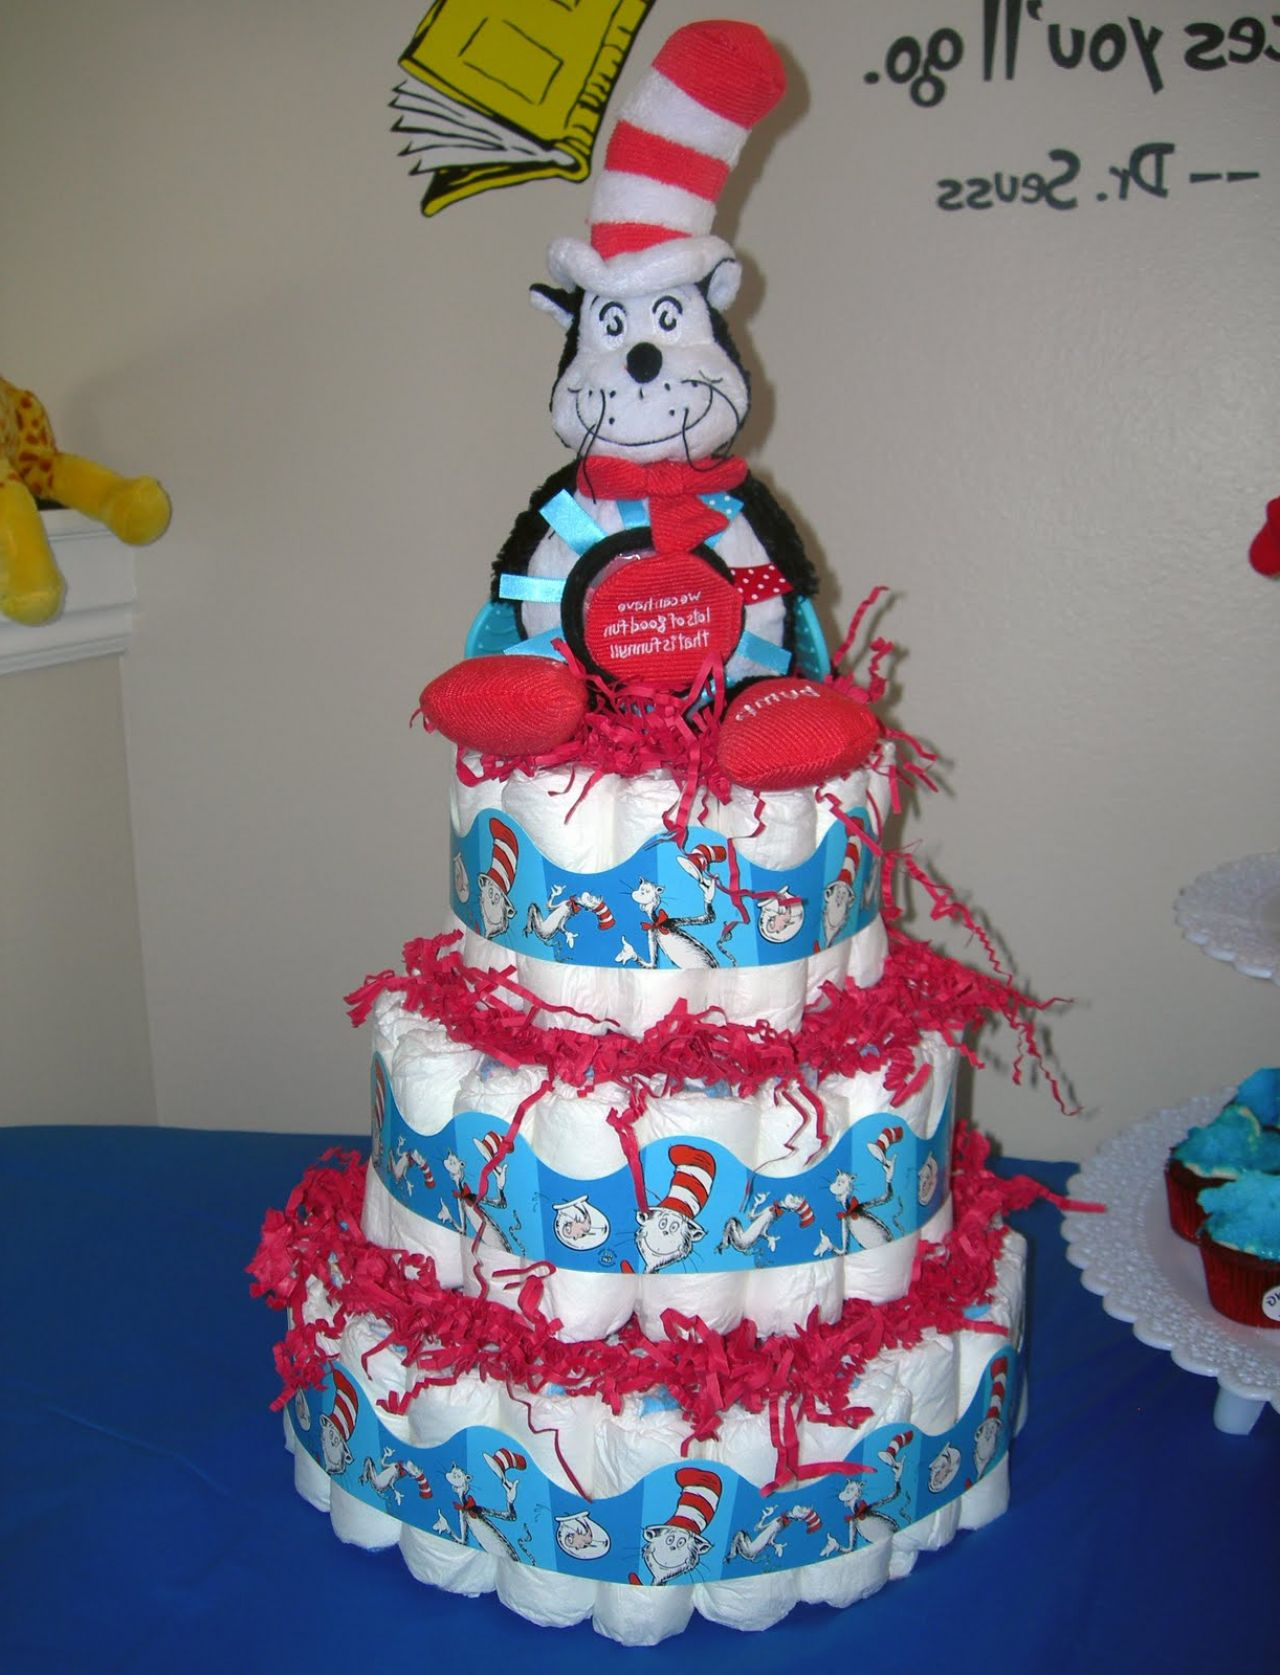 dr-seuess baby deoorations for a baby shower